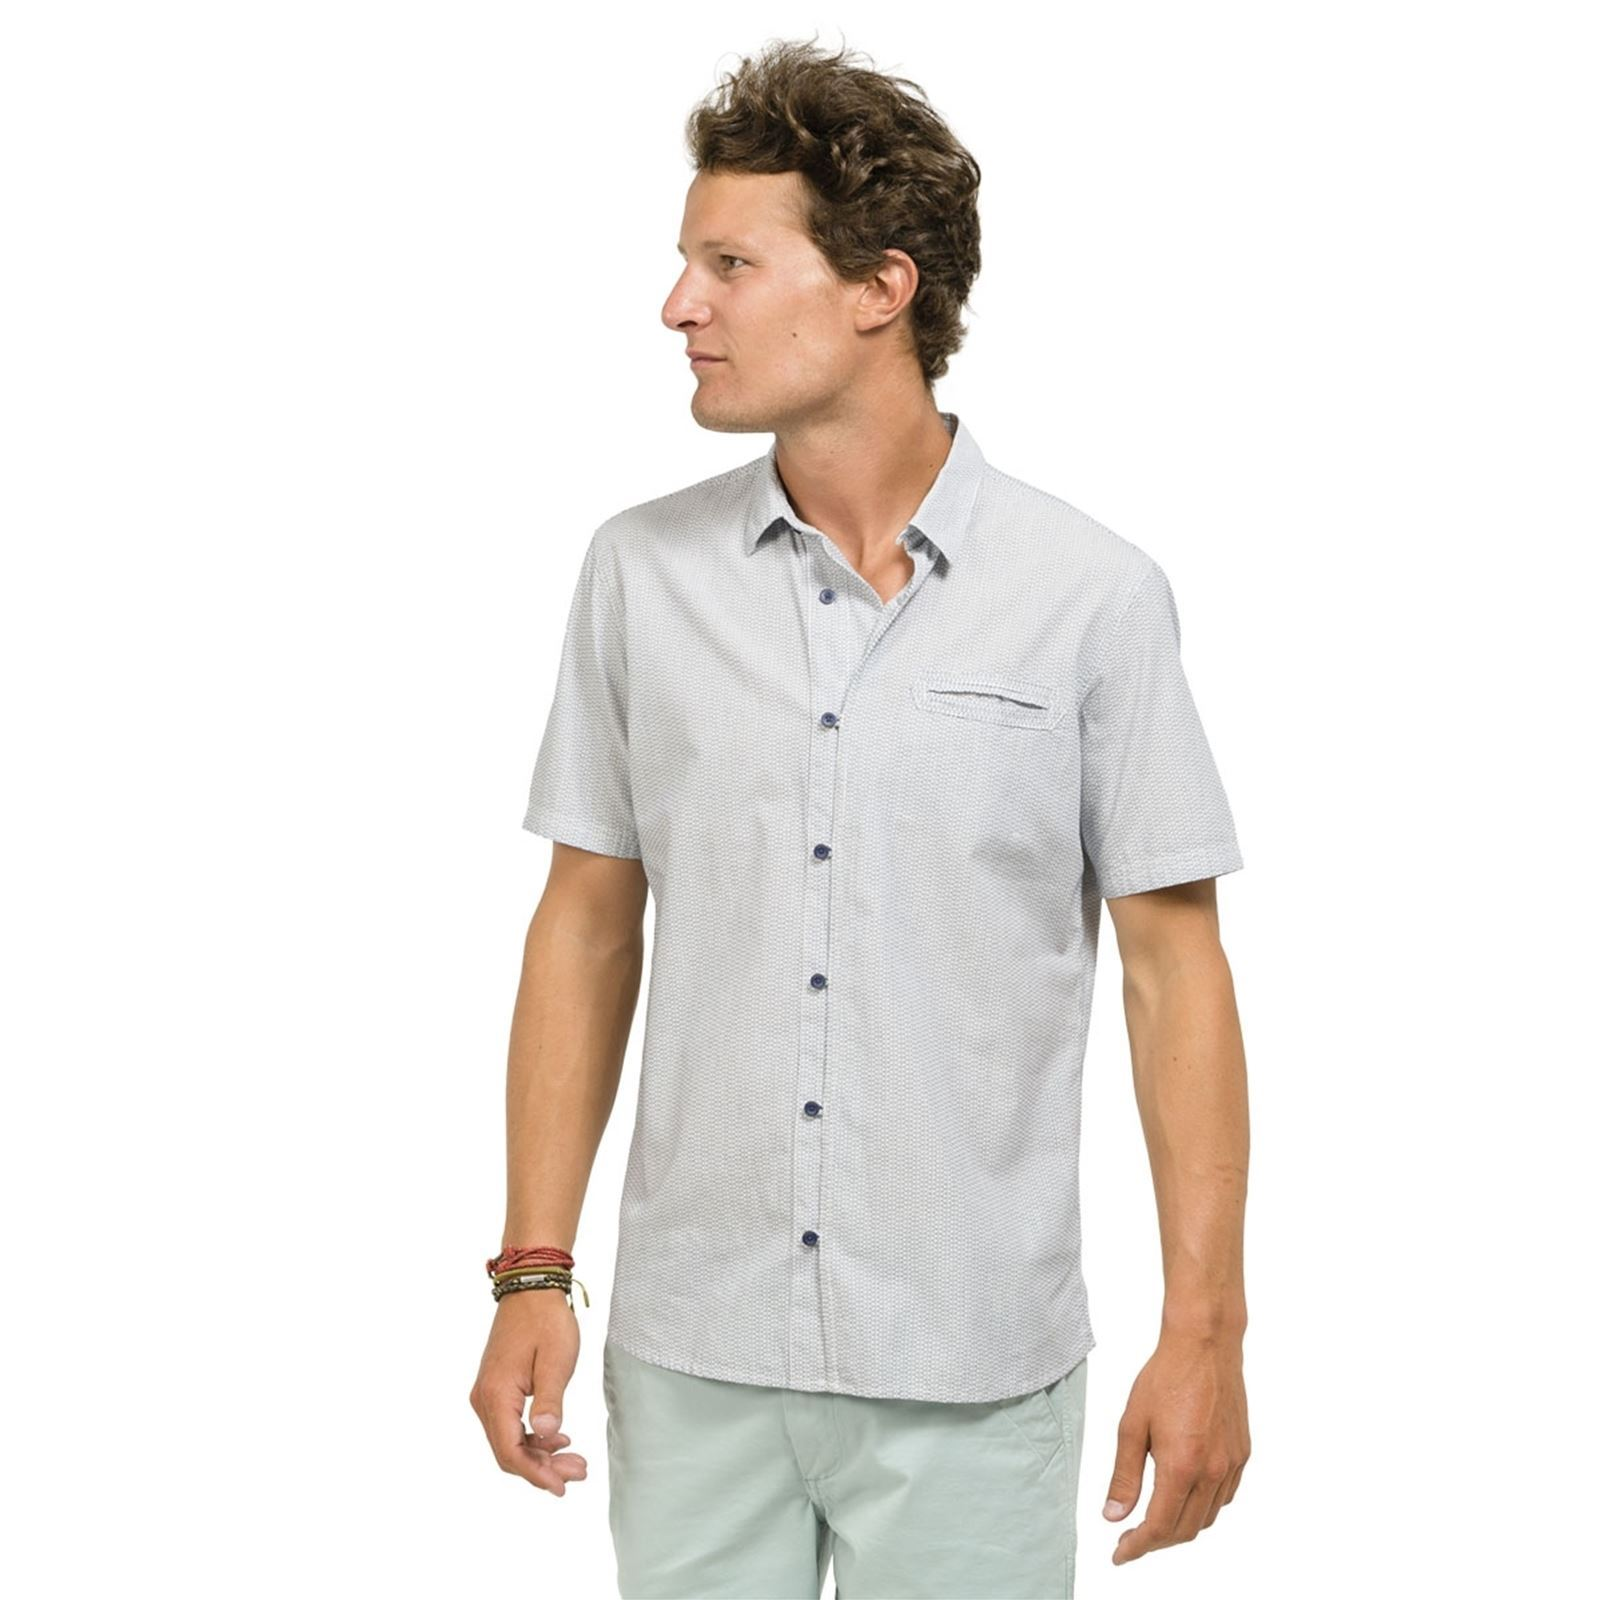 Manches Gris Courtes Ciraya Chemise Oxbow PwTxvqB1B